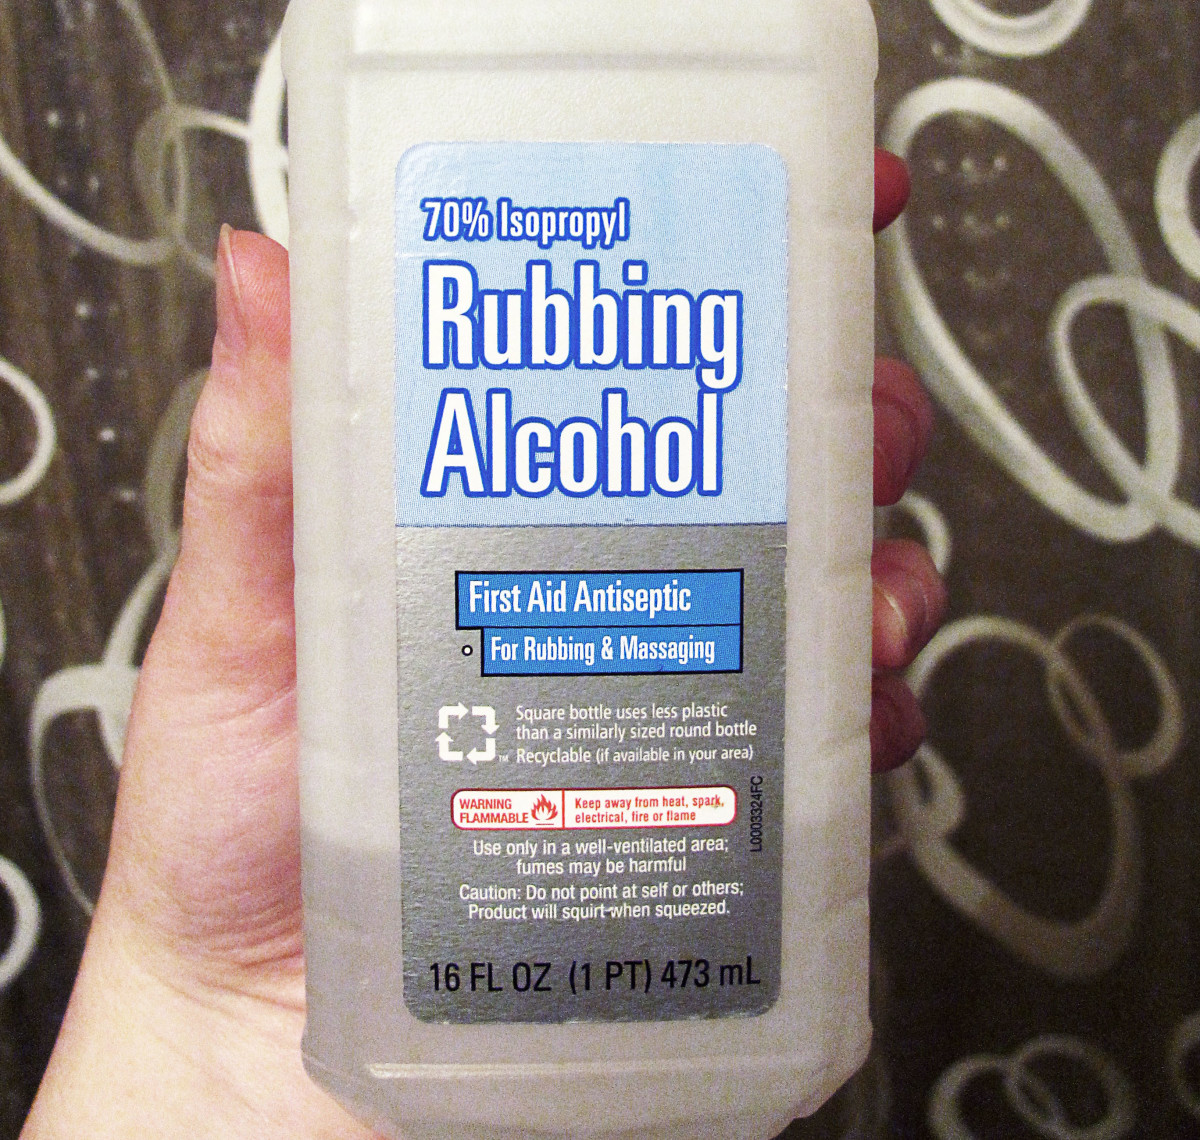 Rubbing alcohol made with 70% isopropyl alcohol is about the proper dilution ratio.